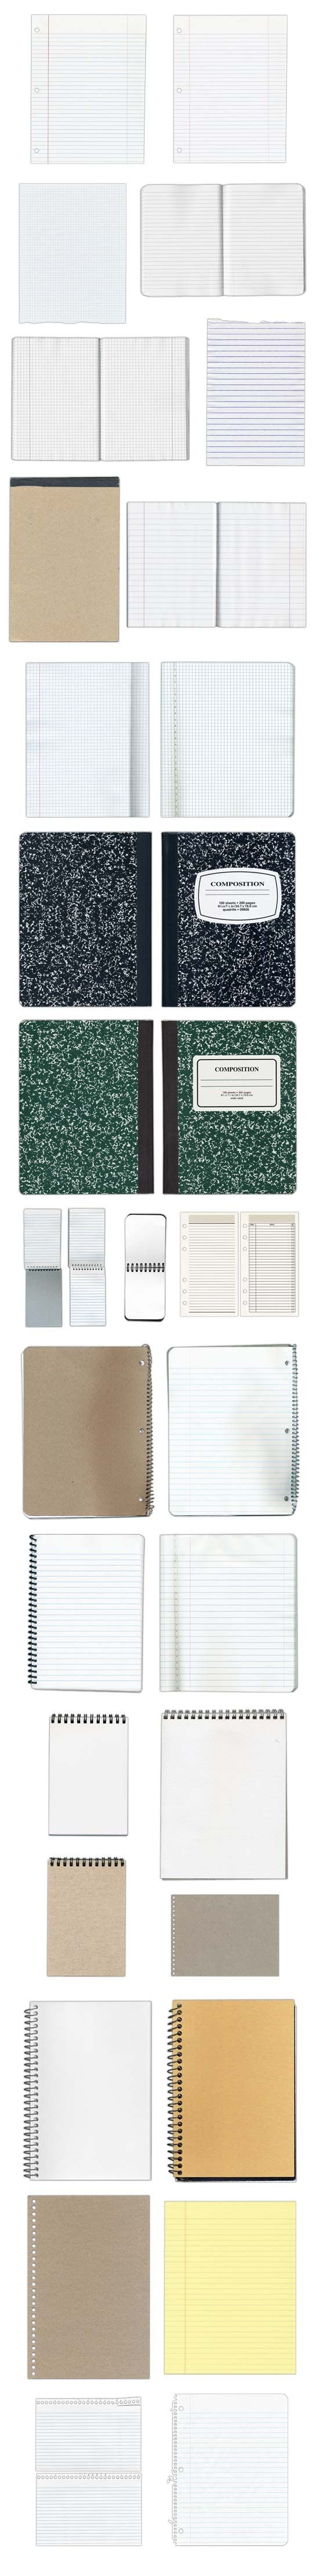 Printable Notepad Paper Enchanting 274 Best Bullet Journal Images On Pinterest  Journal Ideas .